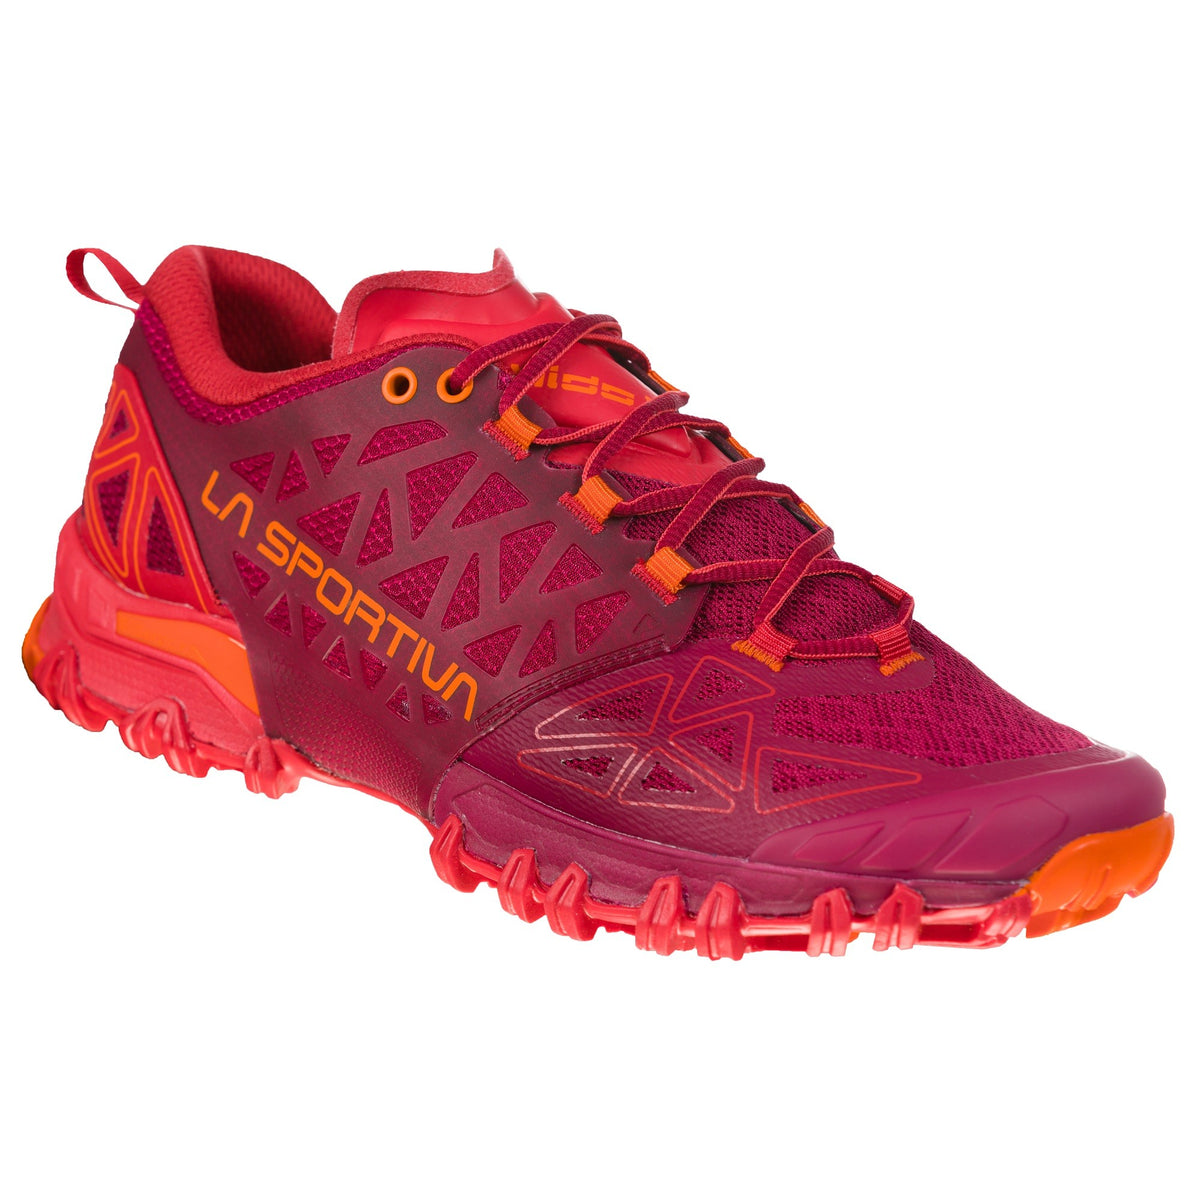 La Sportiva Bushido II Womens trail running shoe, outer side view in Maroon and Red colours